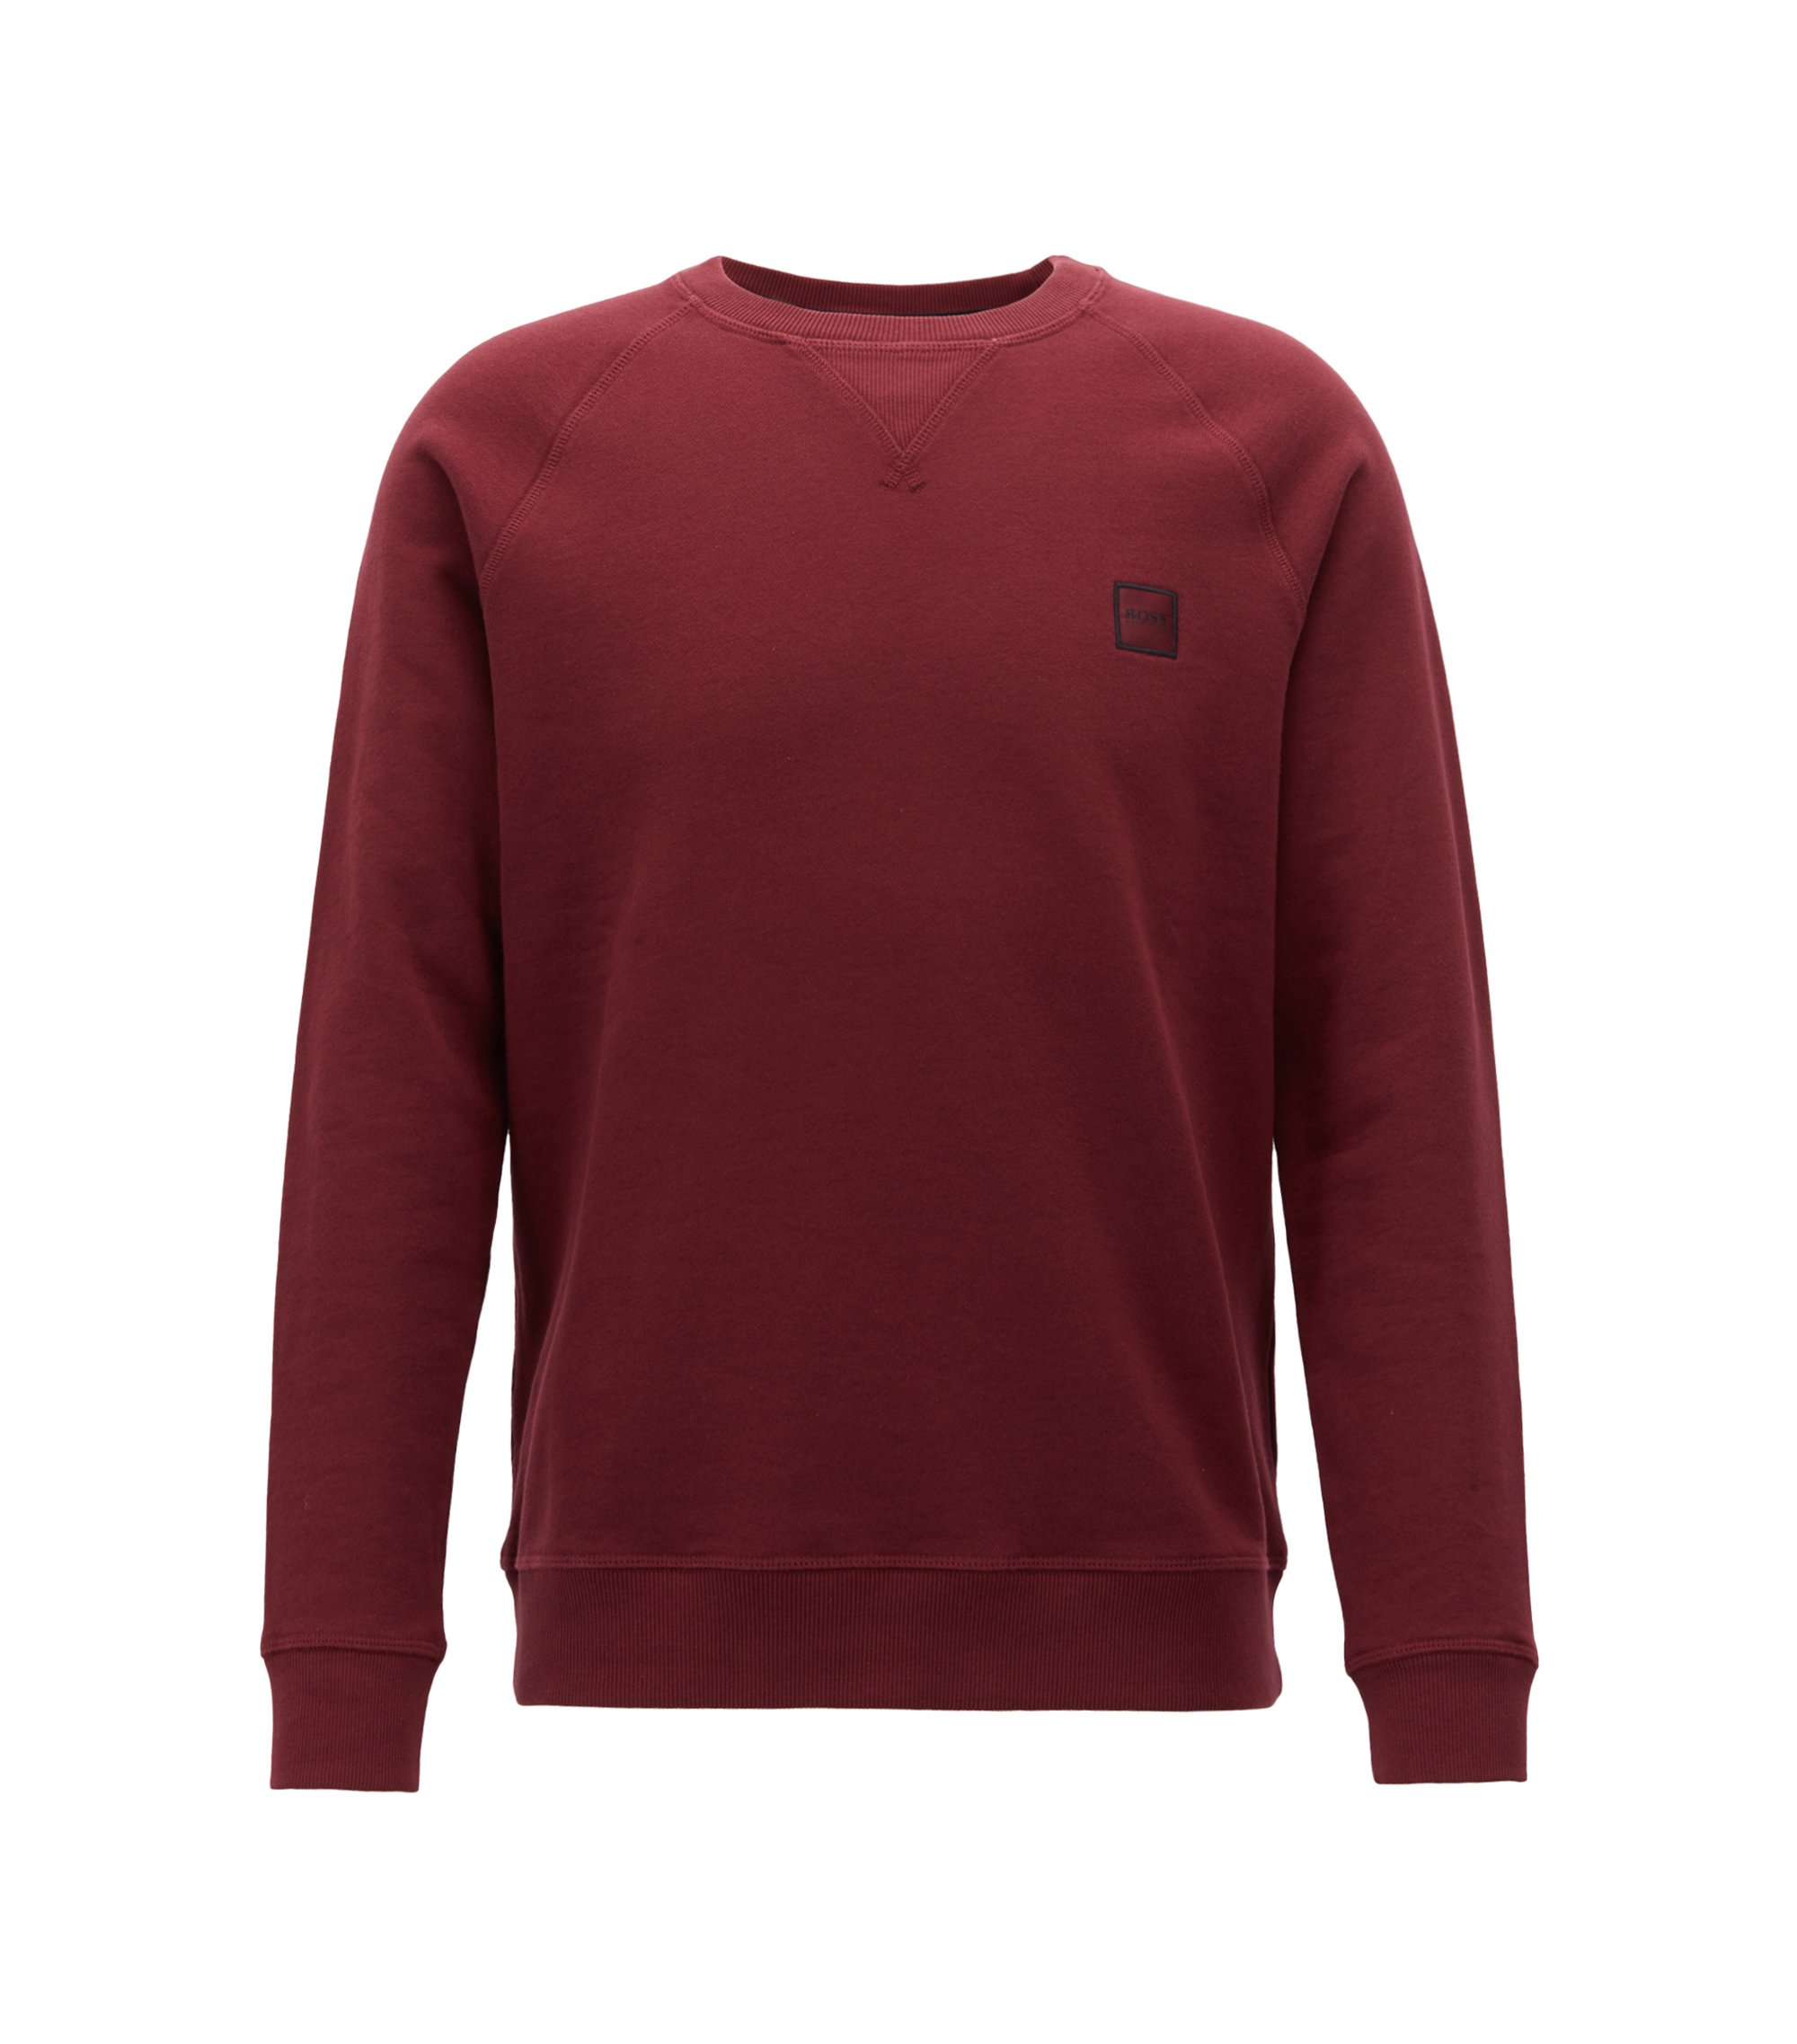 Sweatshirt aus French Terry mit Logo-Patch, Dunkelrot